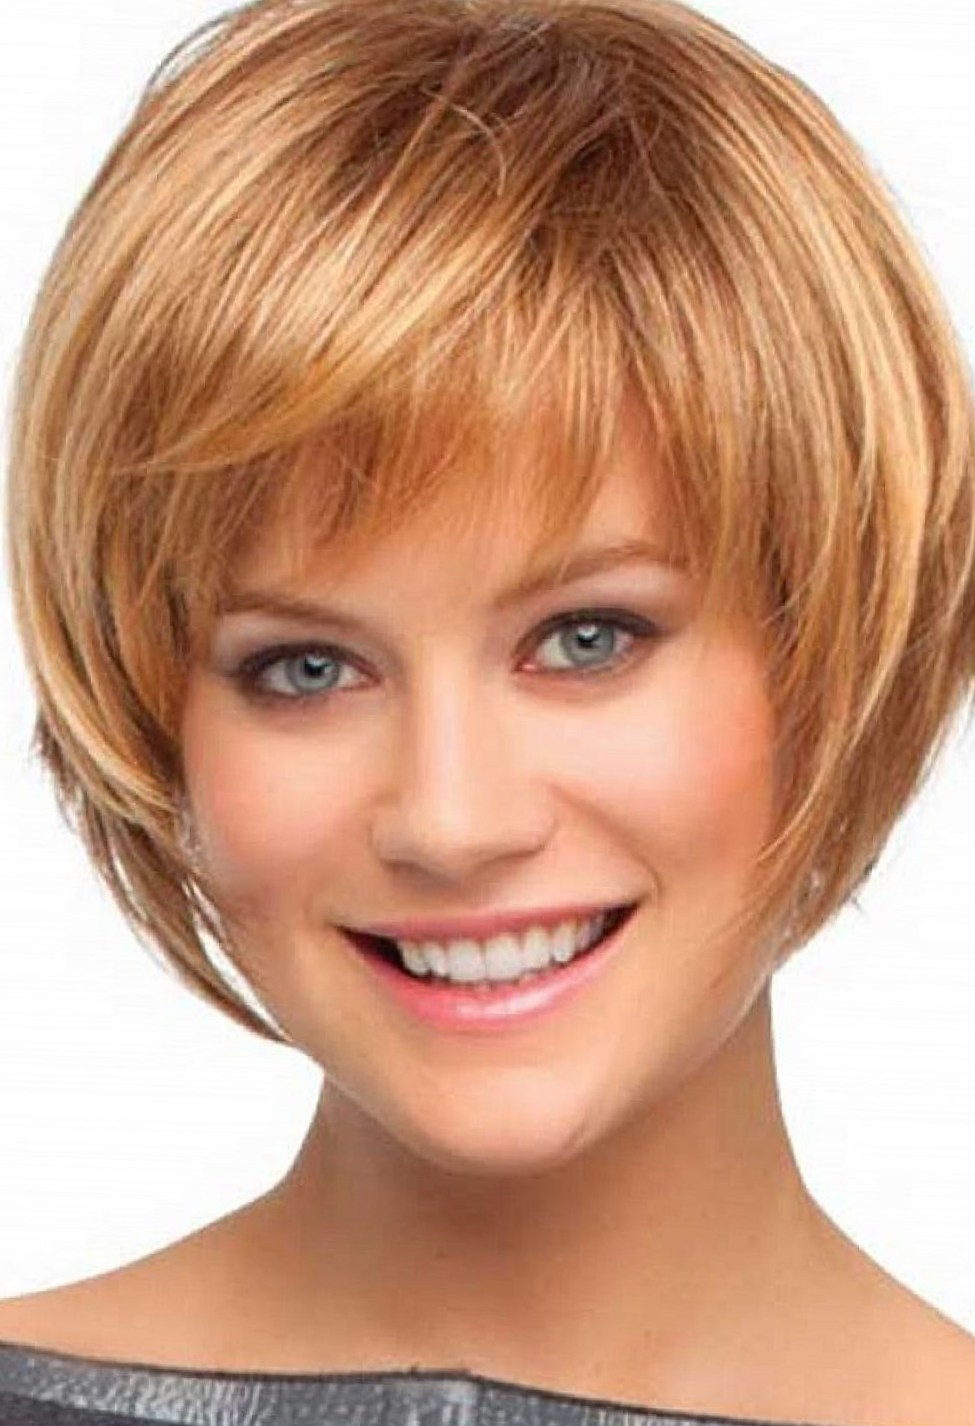 Pleasing Short Bob Hairstyles With Bangs 4 Perfect Ideas For You Talk Short Hairstyles For Black Women Fulllsitofus